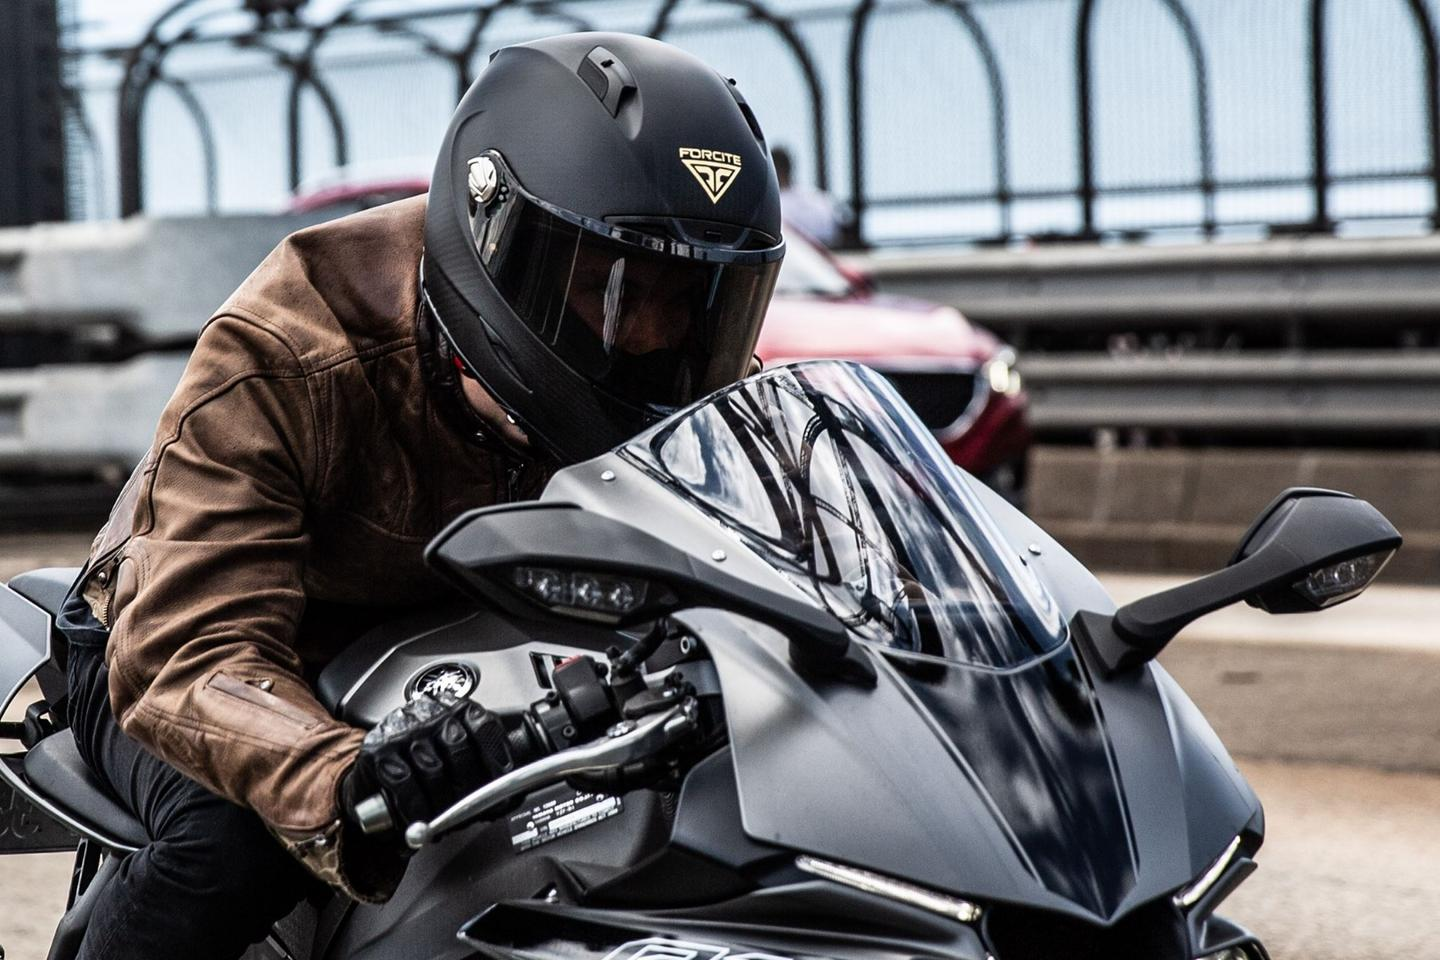 Forcite's smart motorcycle helmet packs Bluetooth, an action